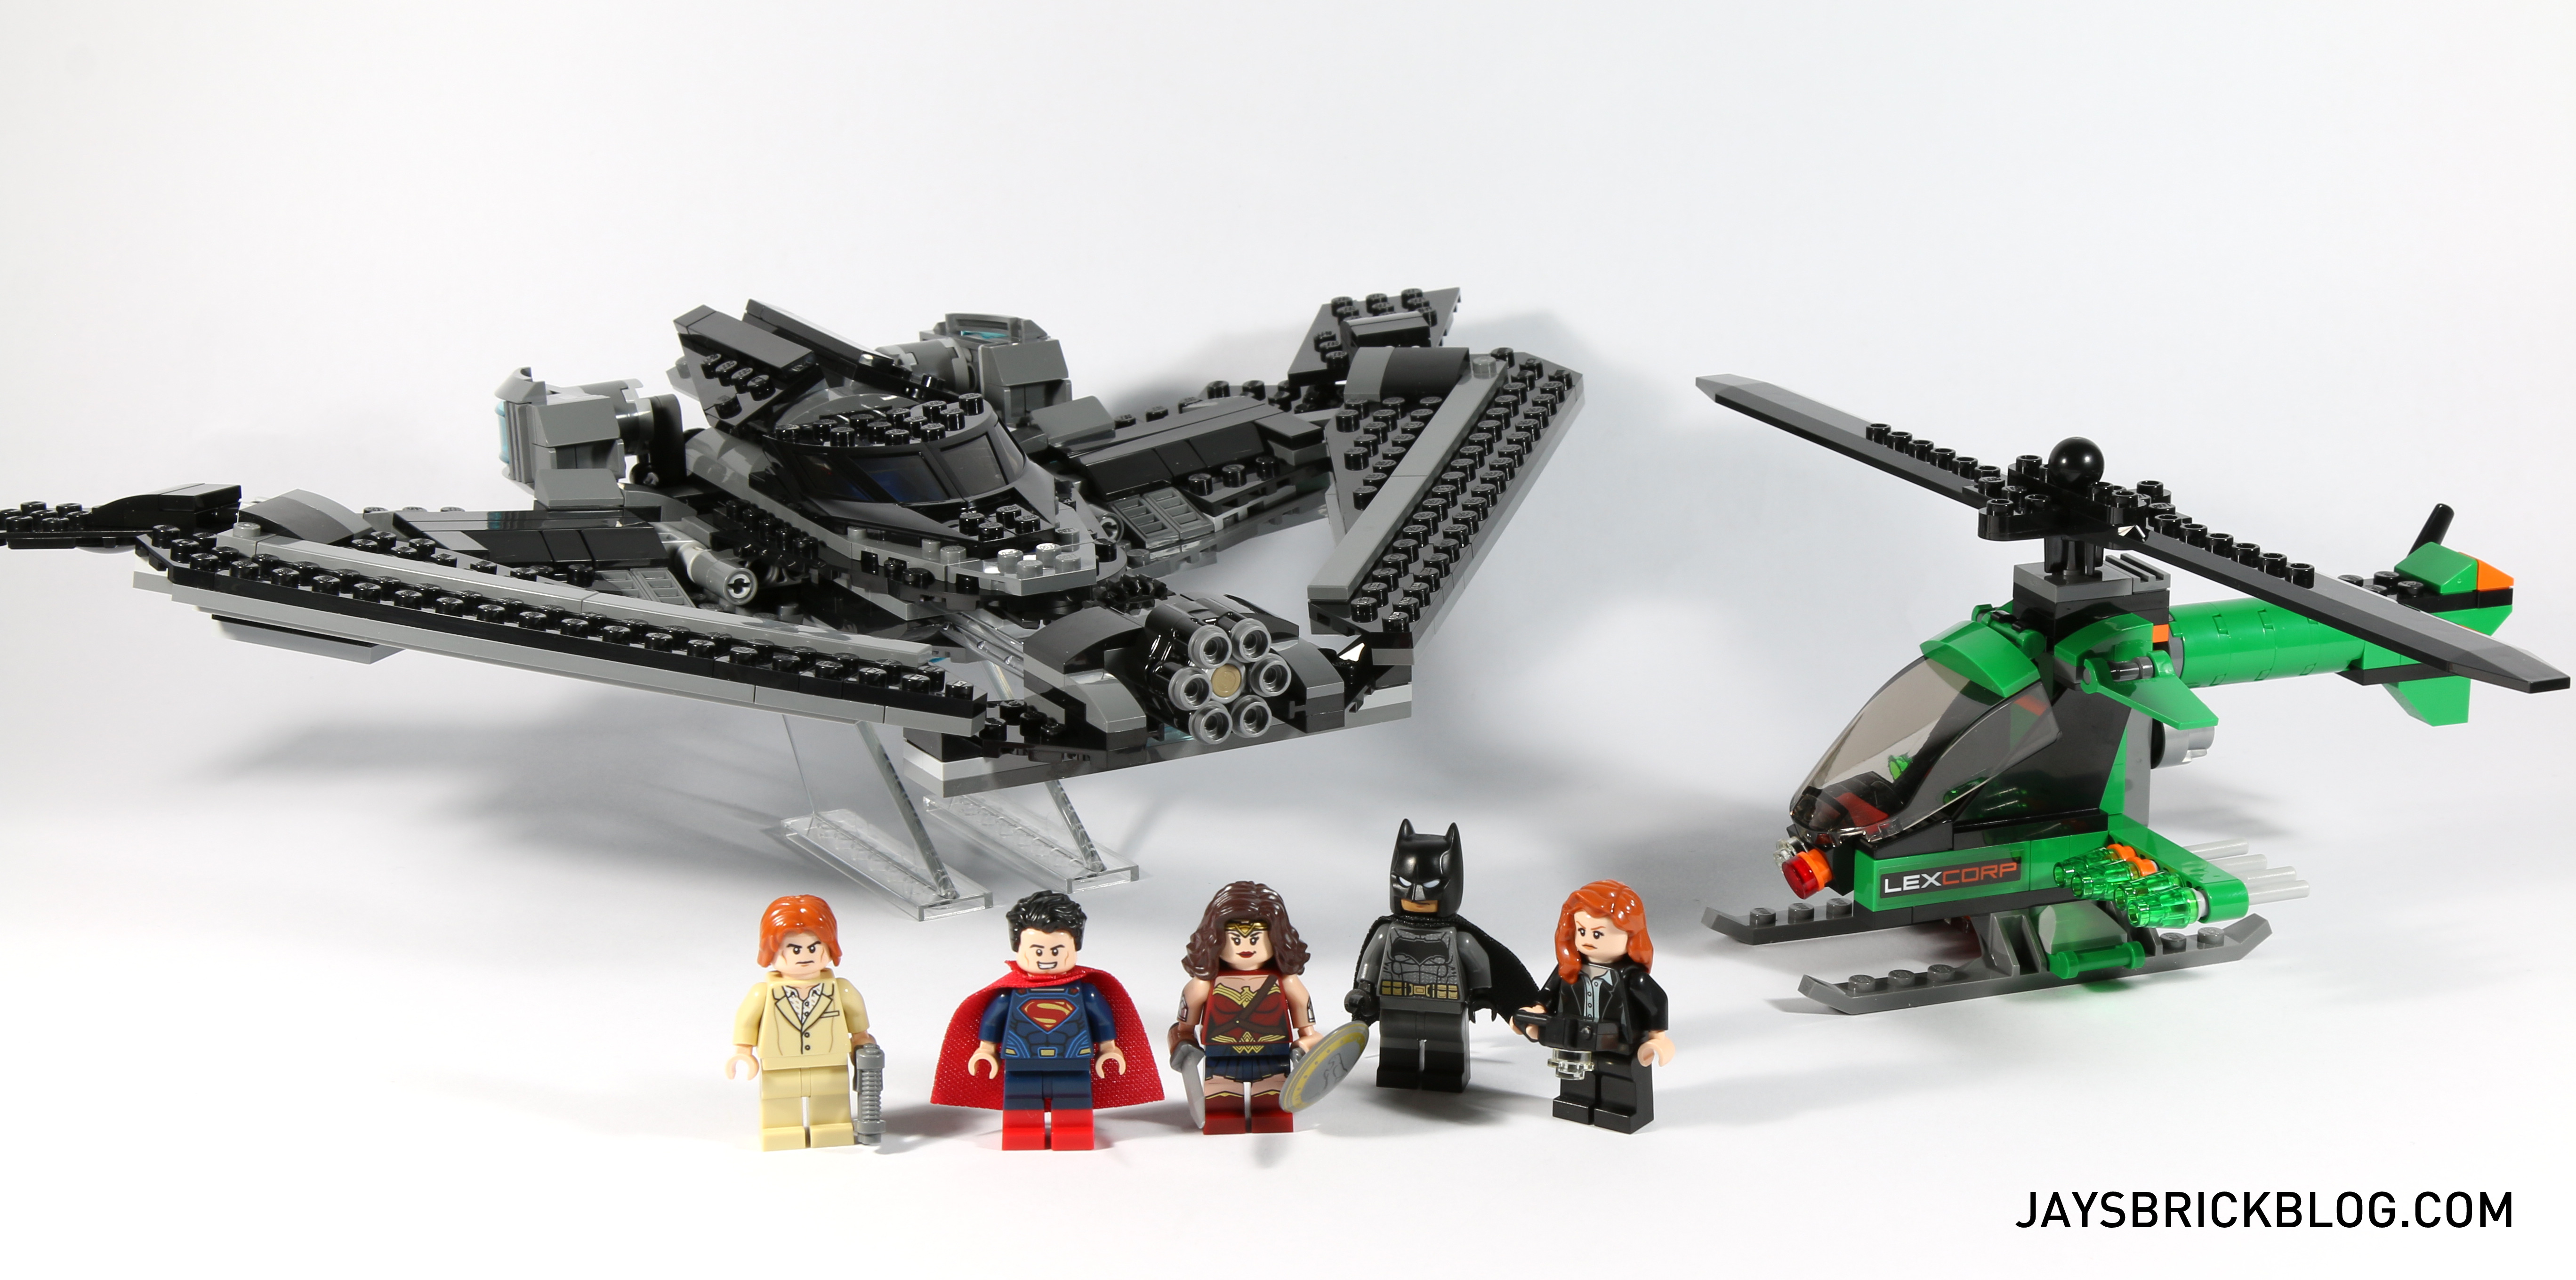 Review: LEGO 76046 Heroes of Justice Sky High Battle